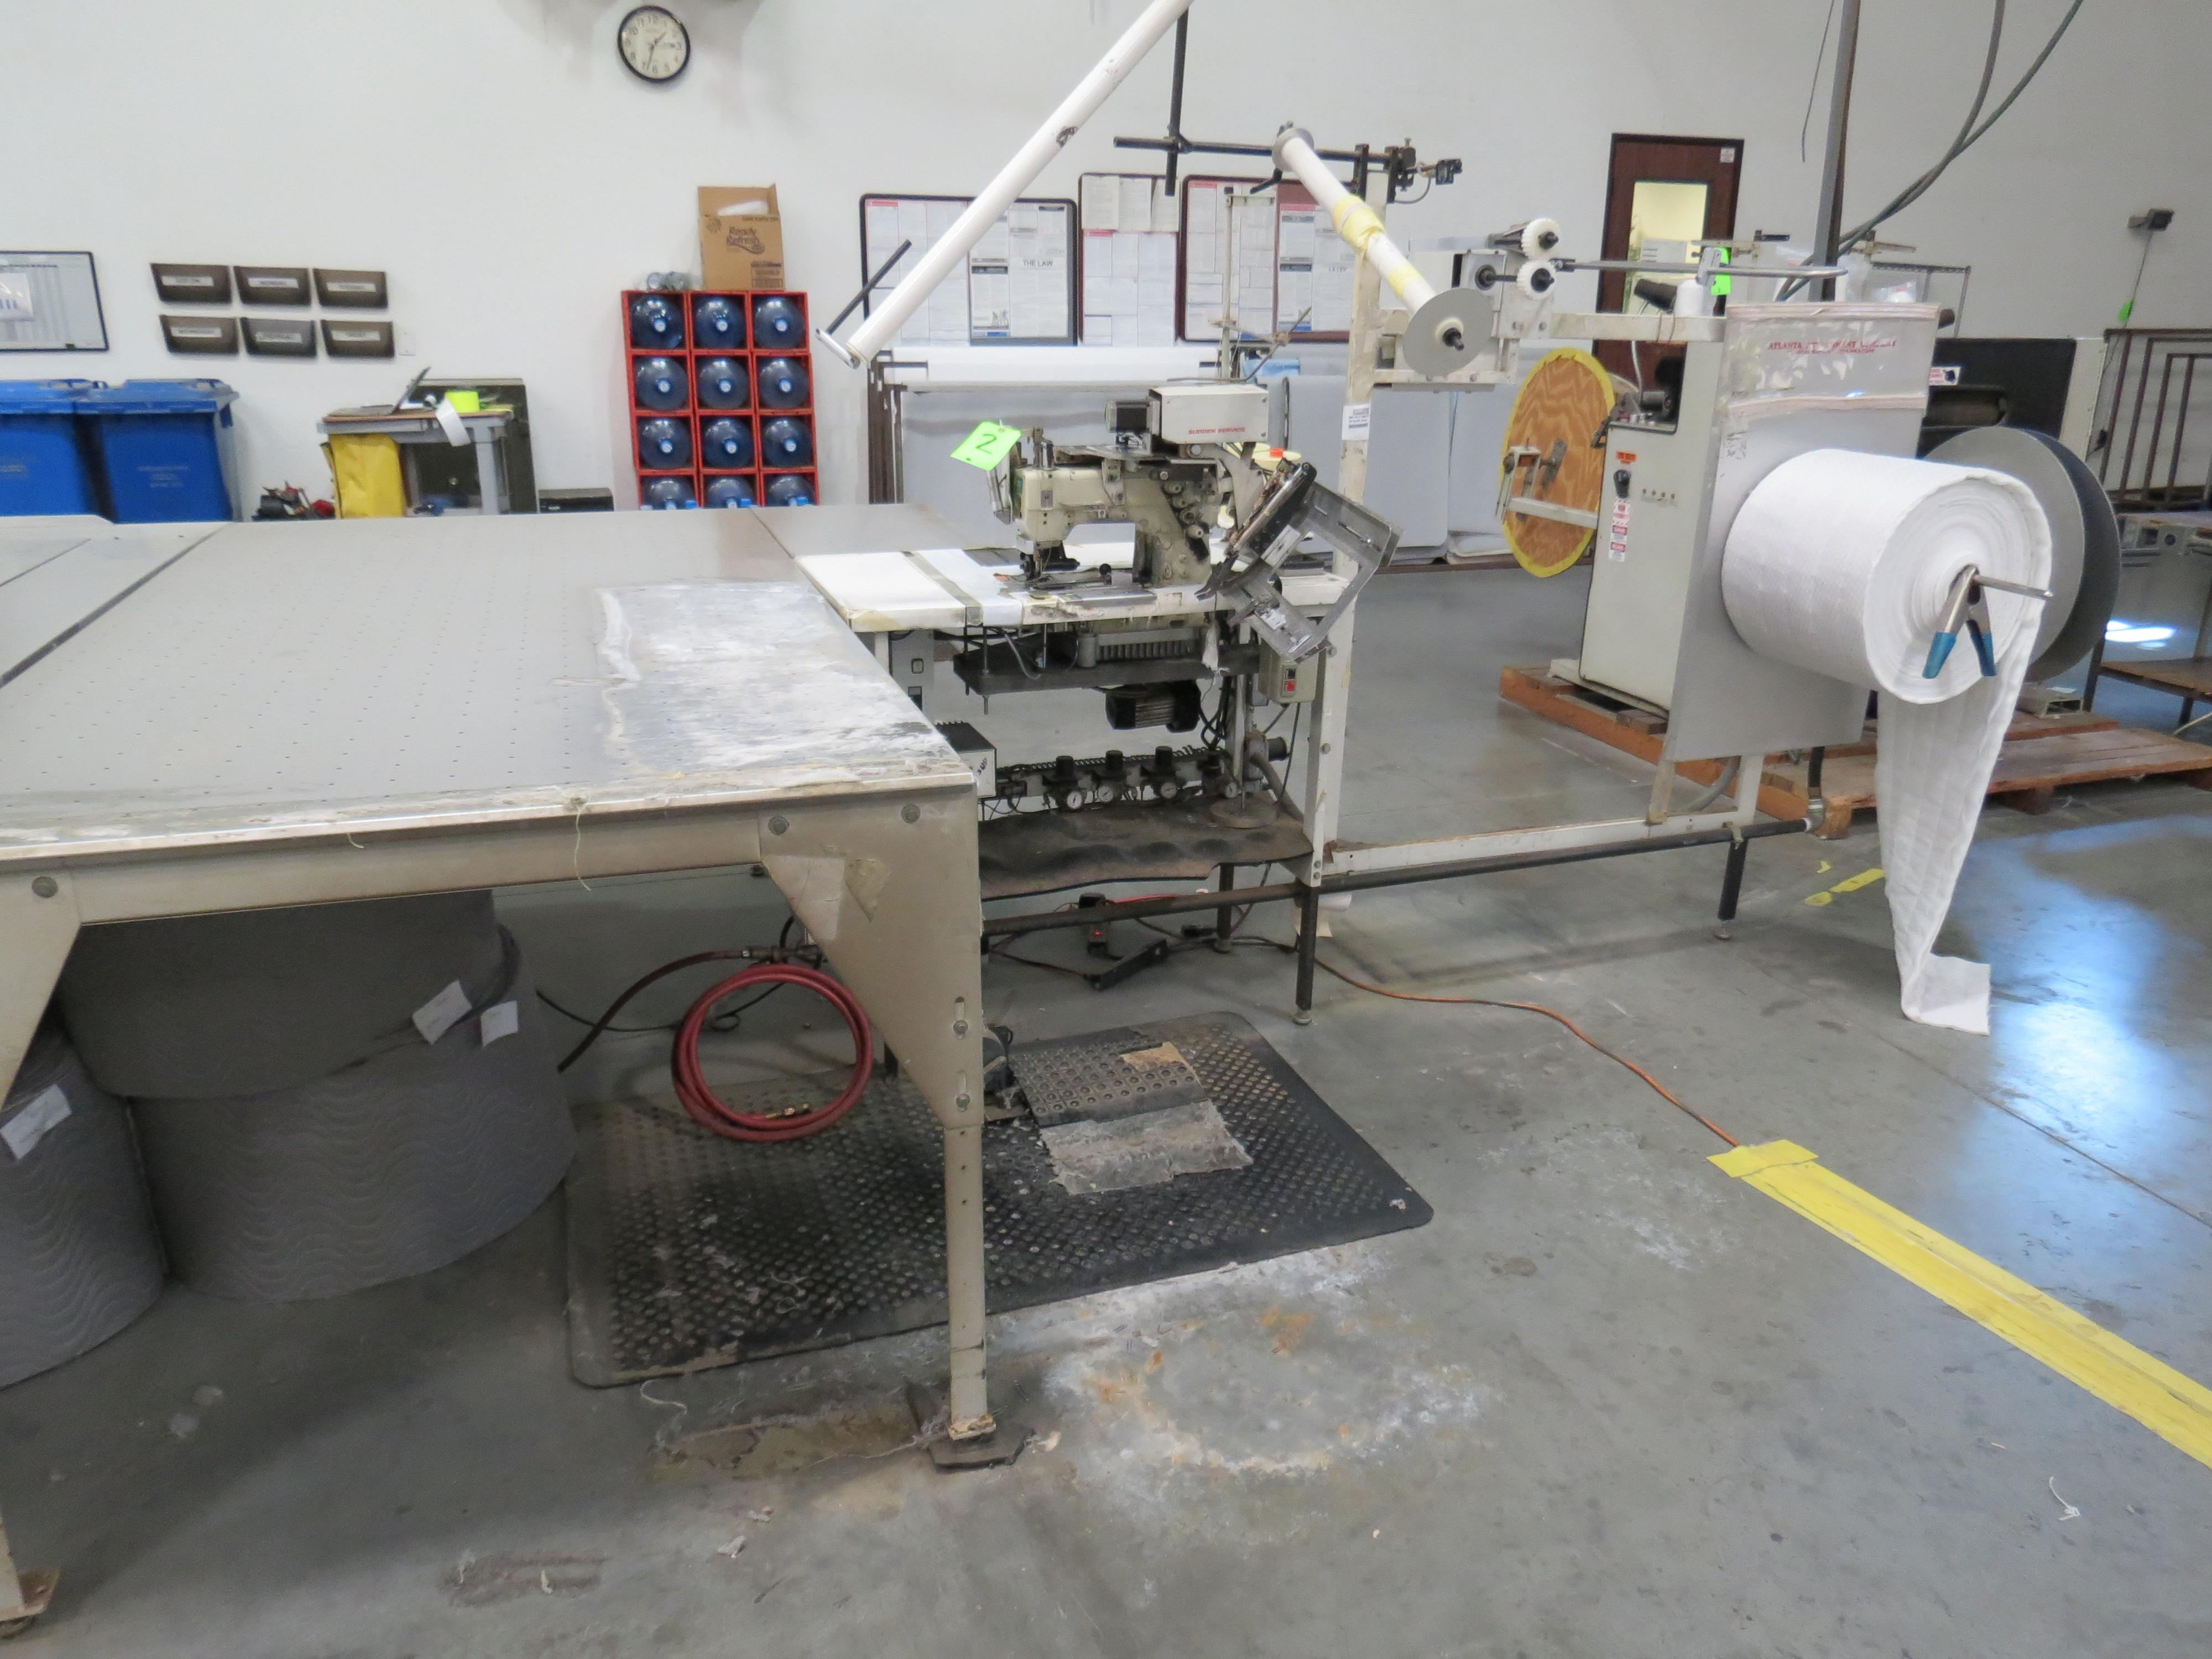 Atlanta Attachment Company VM1804P-NG-002 Ruffling Sewing Machine with Flotation Table 4' x 8' - Image 6 of 6